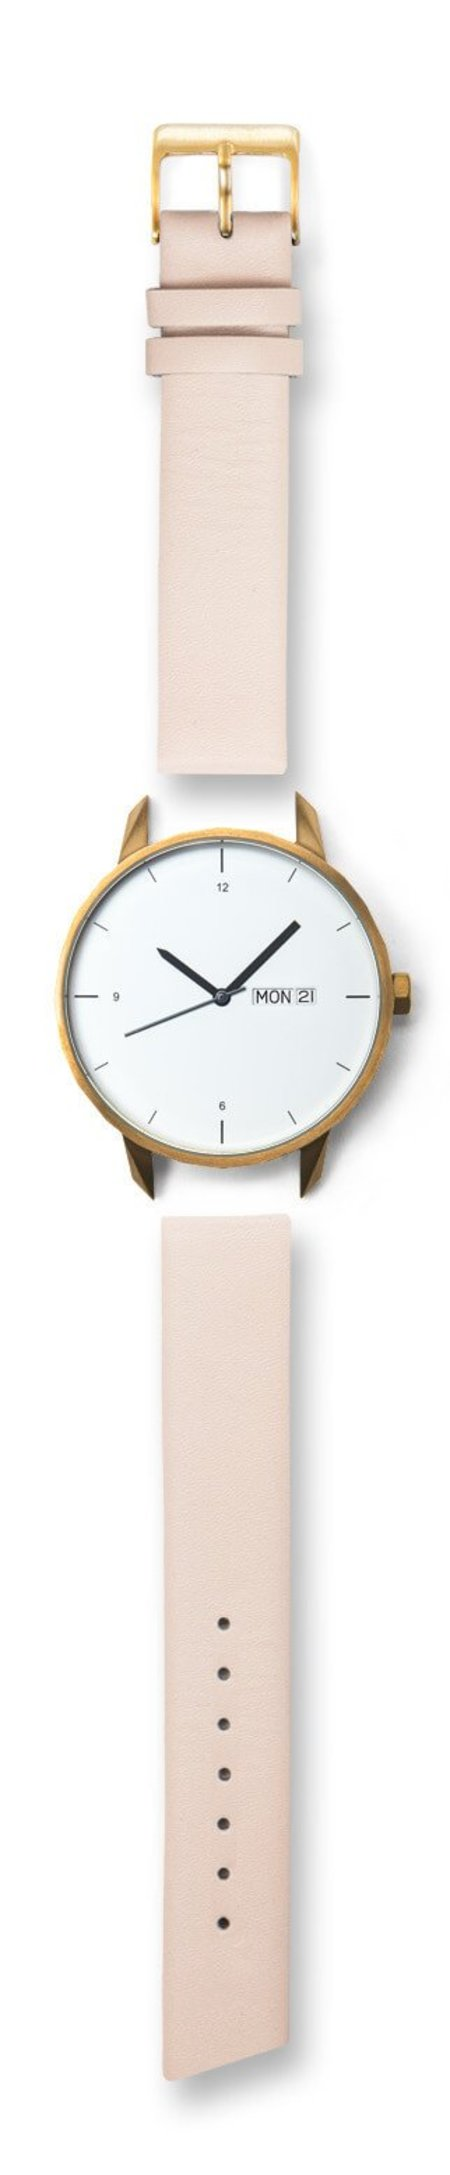 Unisex Tinker Watches 42mm Gold Watch Nude Strap